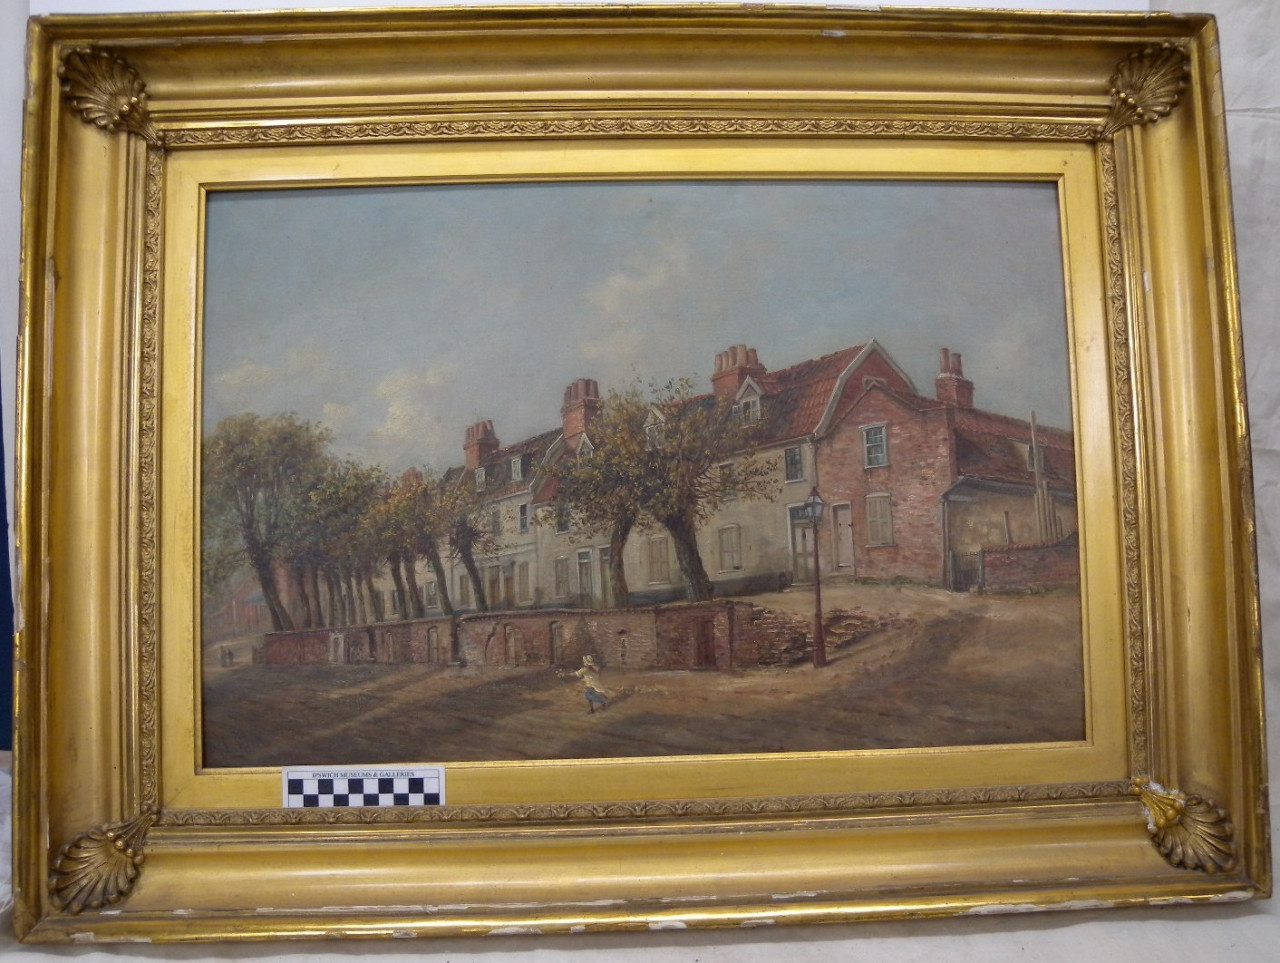 A photo of a painting surrounded by a large gold frame. The painting depicts a row of trees with a line of terrace houses behind them